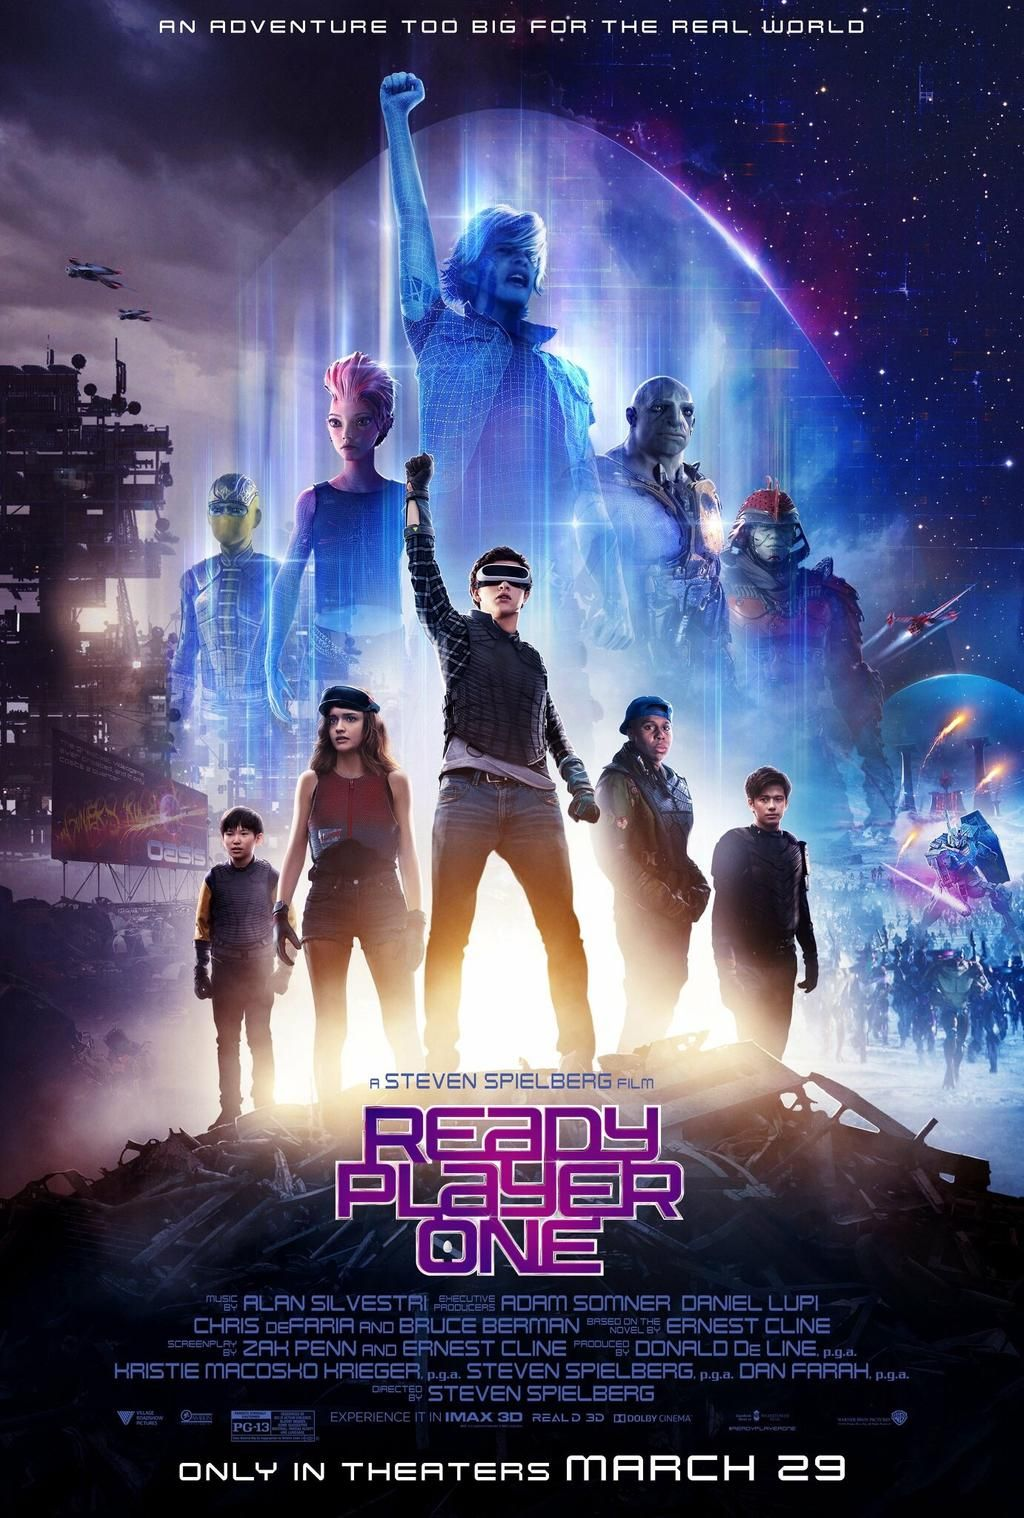 The poster for the movie prequel to Ready Player Two.